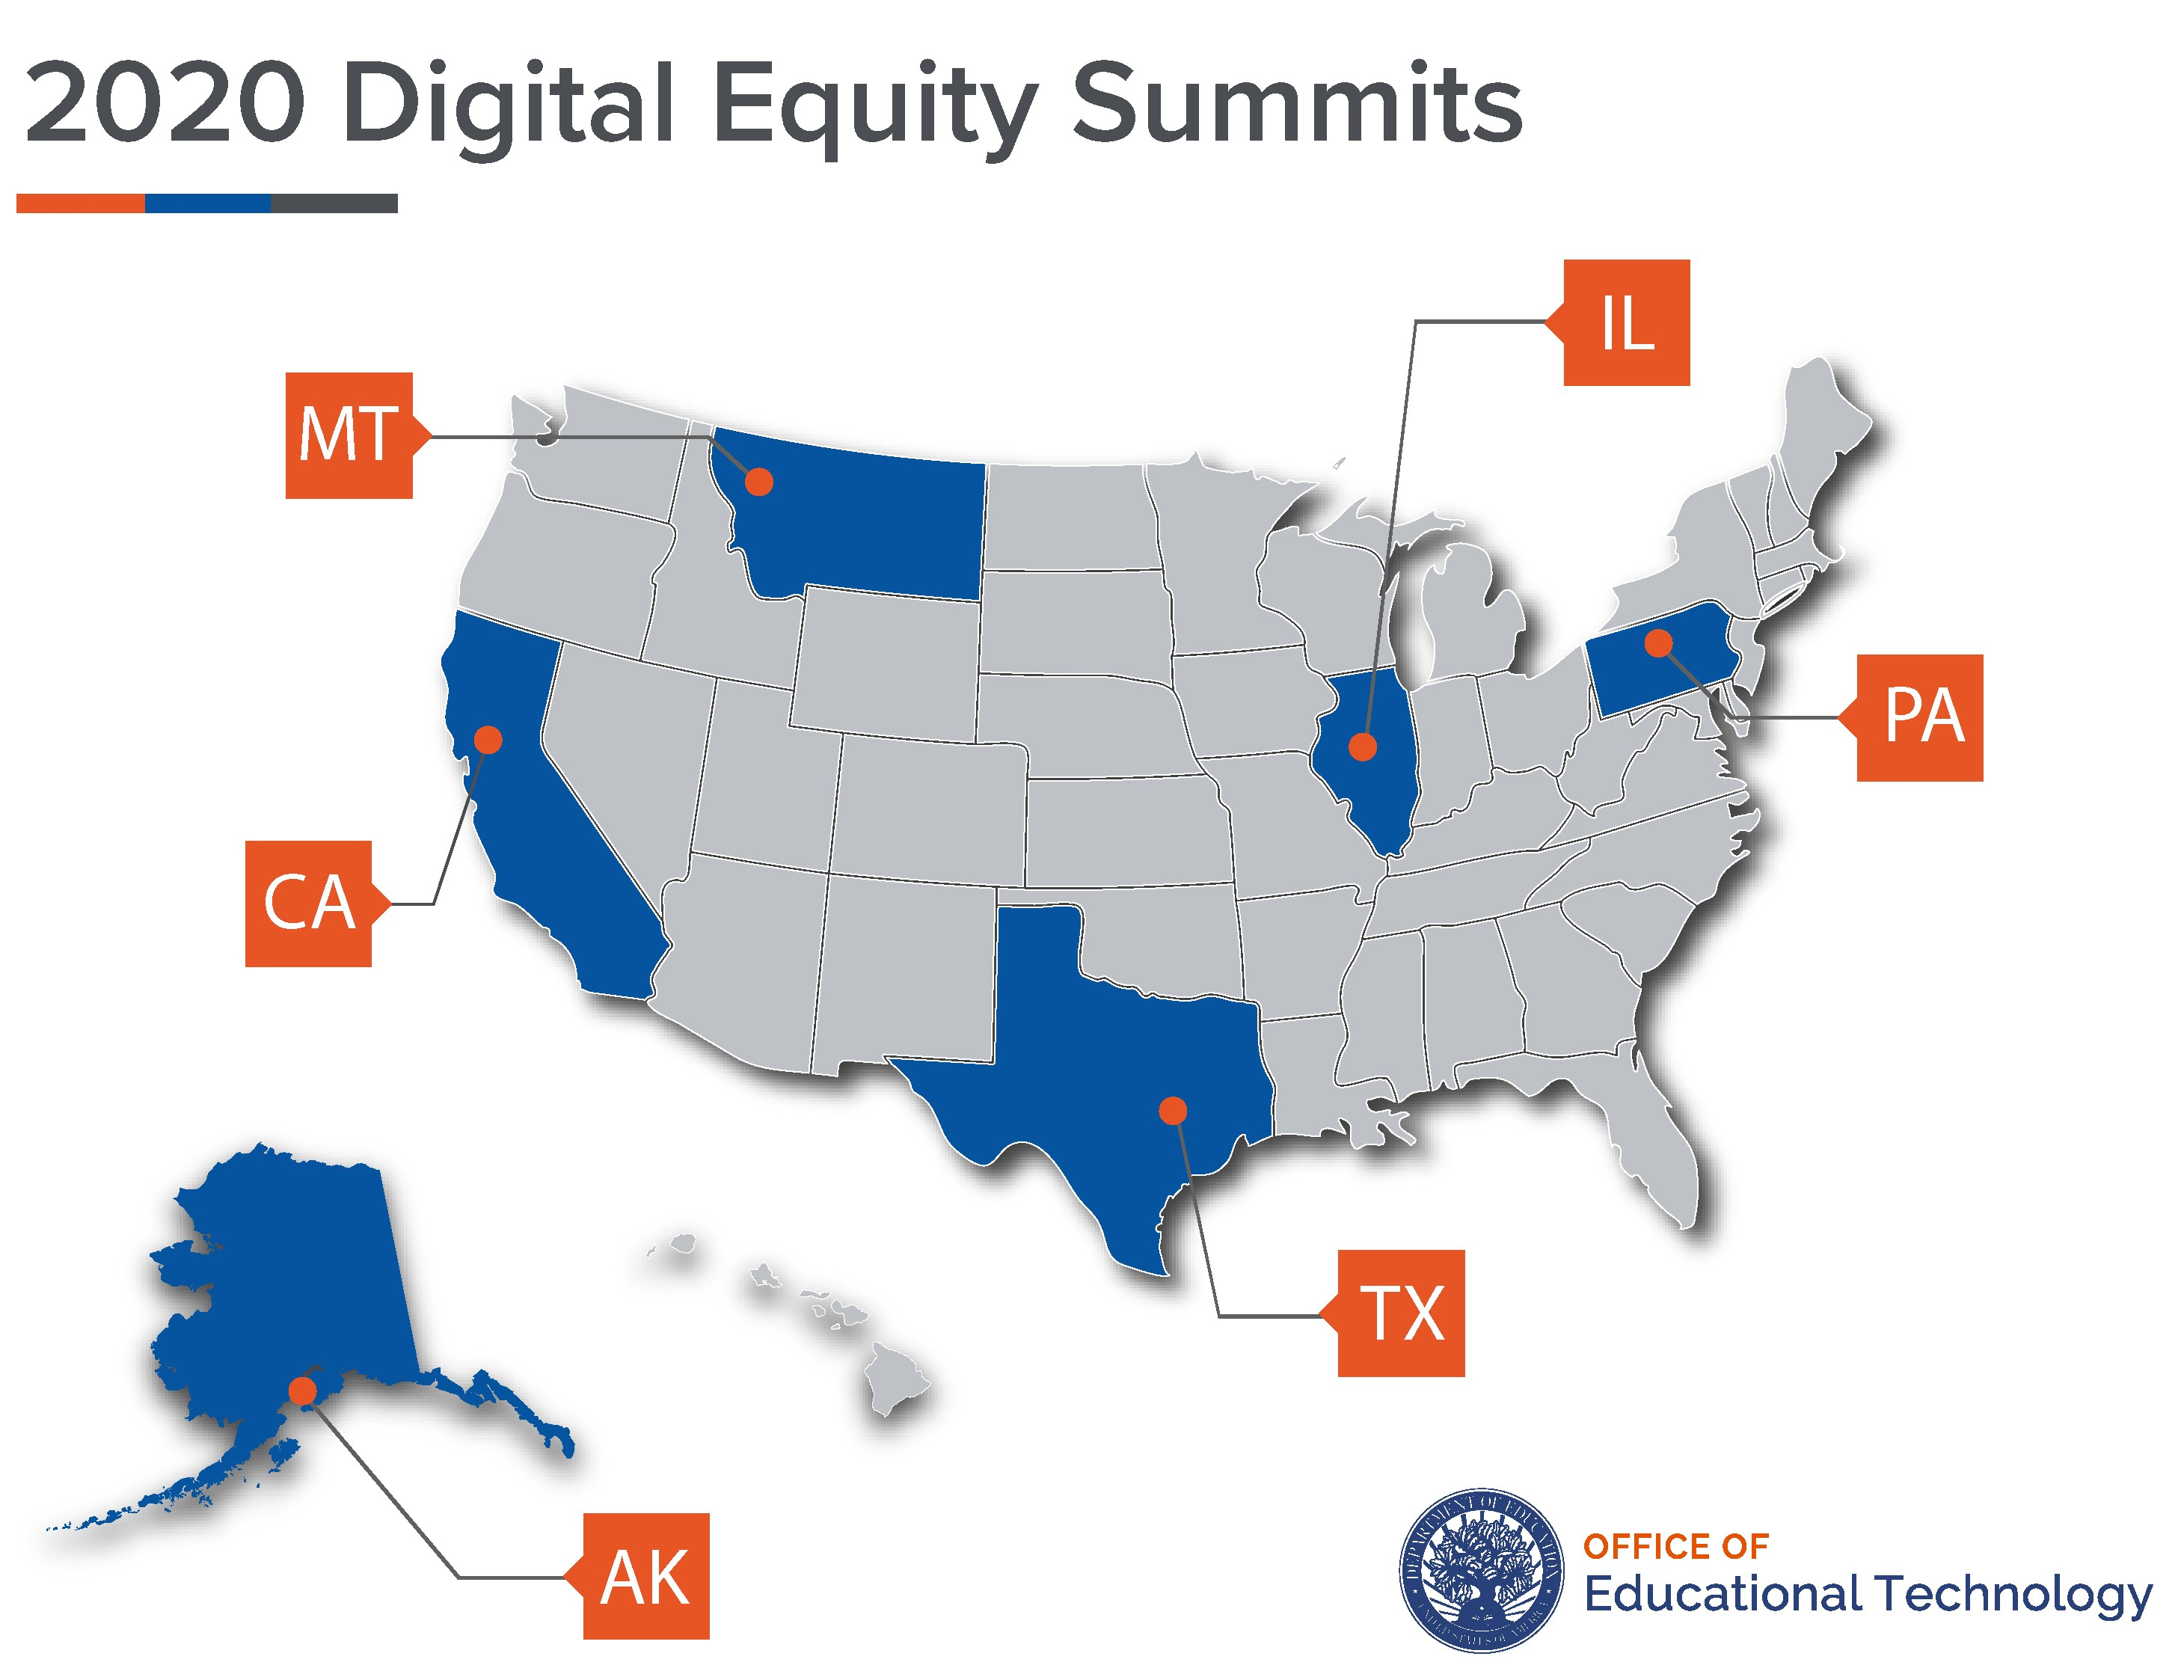 2020 Regional Digital Equity Summits: Partnering to Connect Students